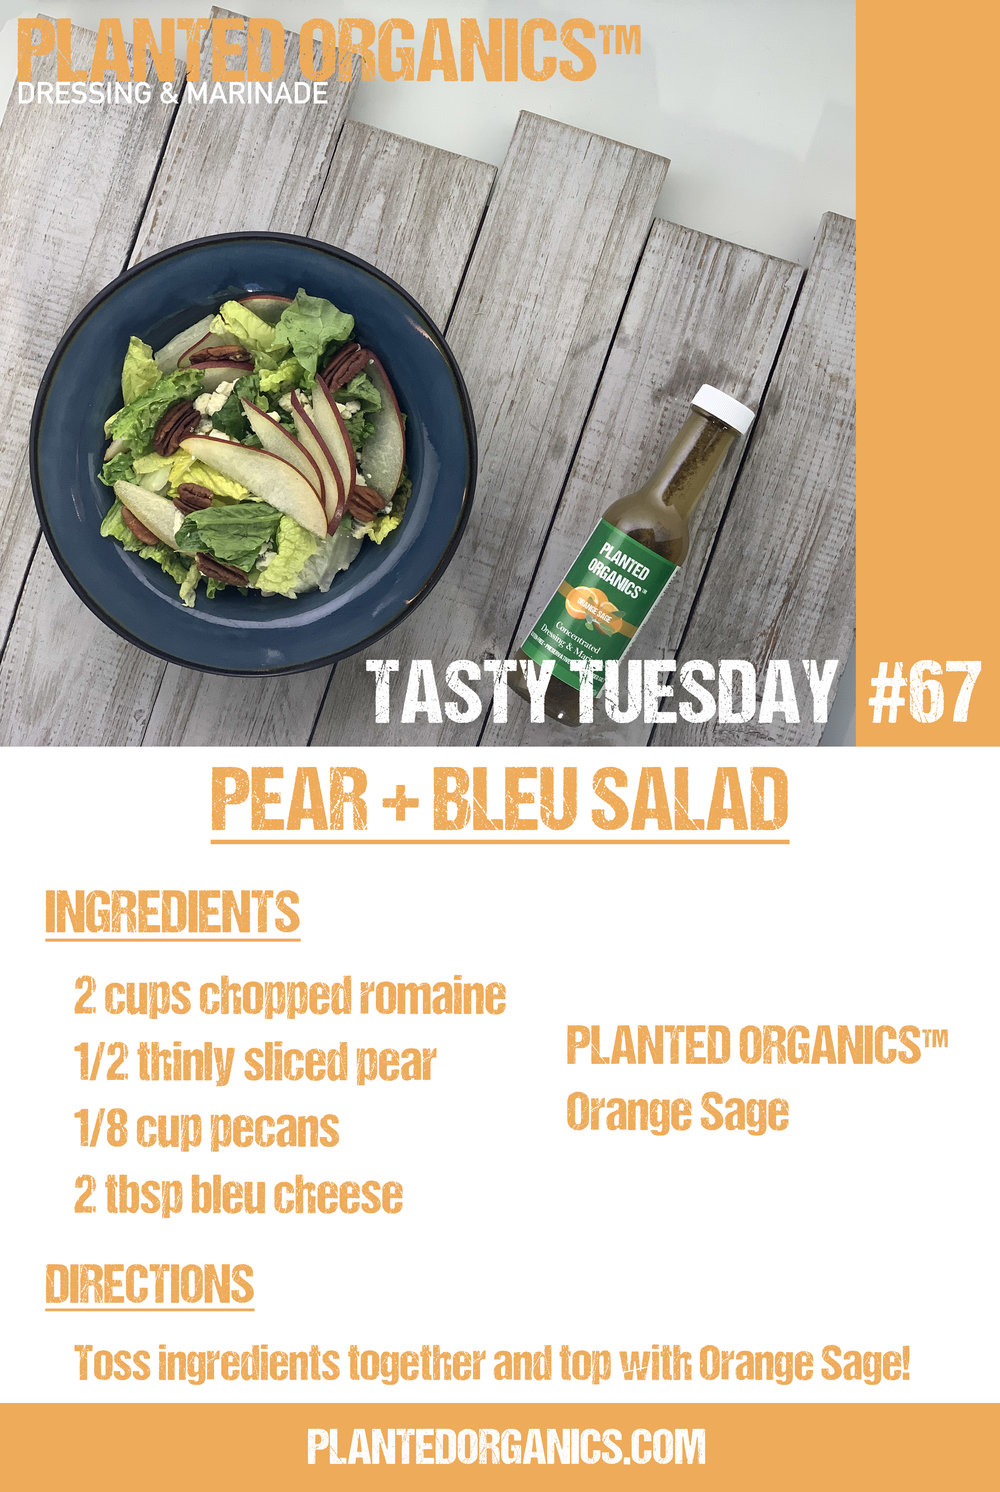 Tasty Tuesday #67! - 2/26/18 - This week's recipe is a simple Pear + Bleu salad! The brightness of Orange Sage pairs perfectly with bleu cheese! Hope you enjoy!